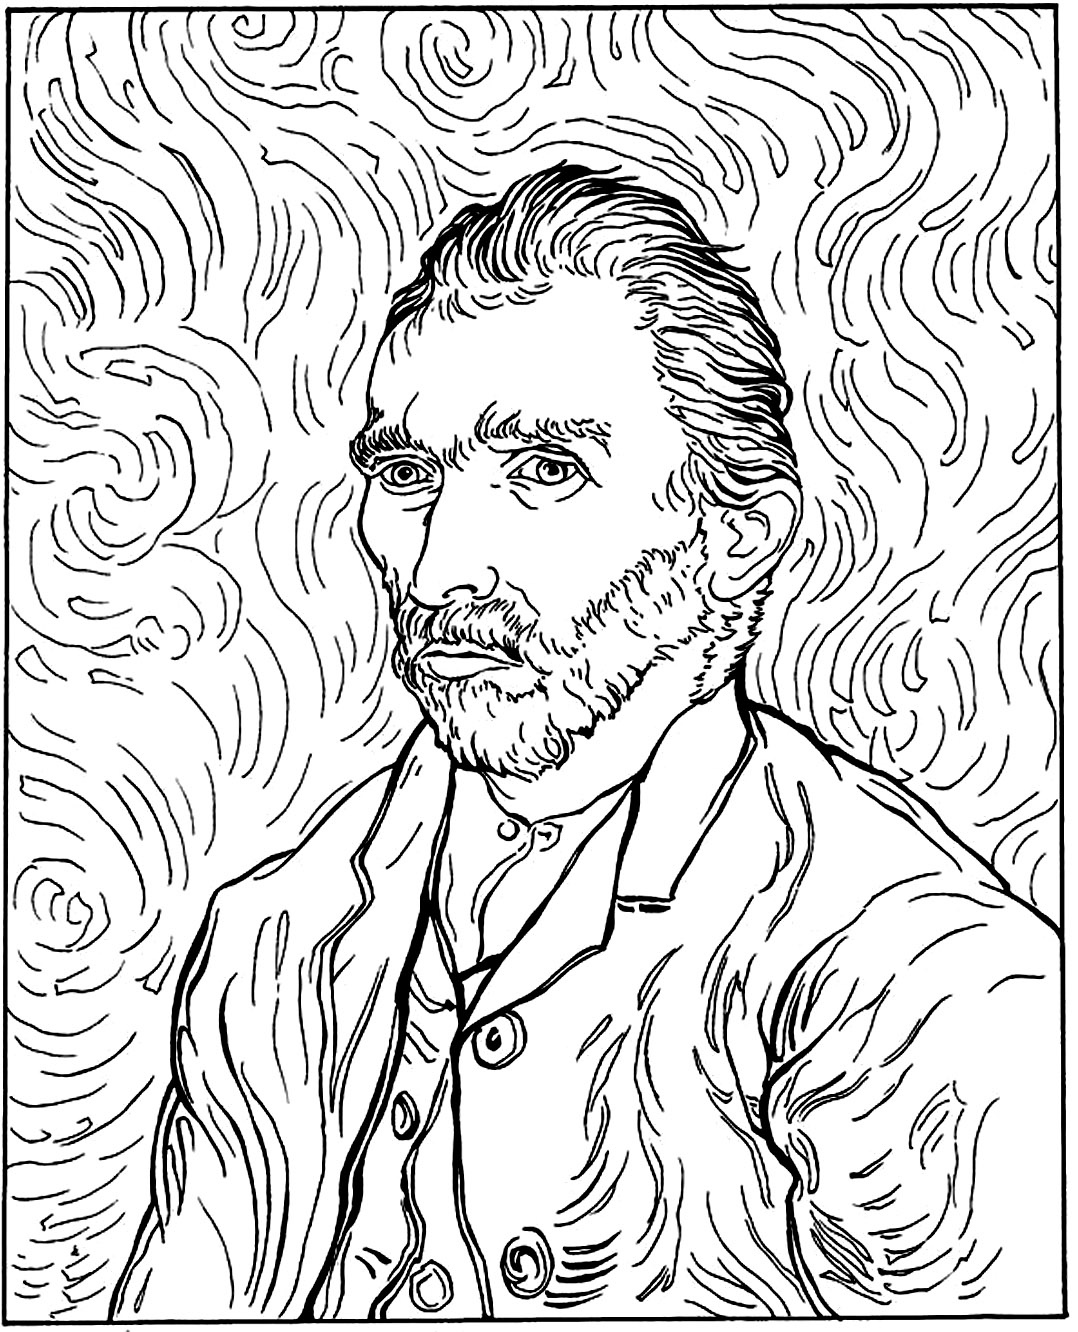 Van Gogh Coloring Pages Van Gogh Autoportrait  Masterpieces  Coloring Pages For Adults .